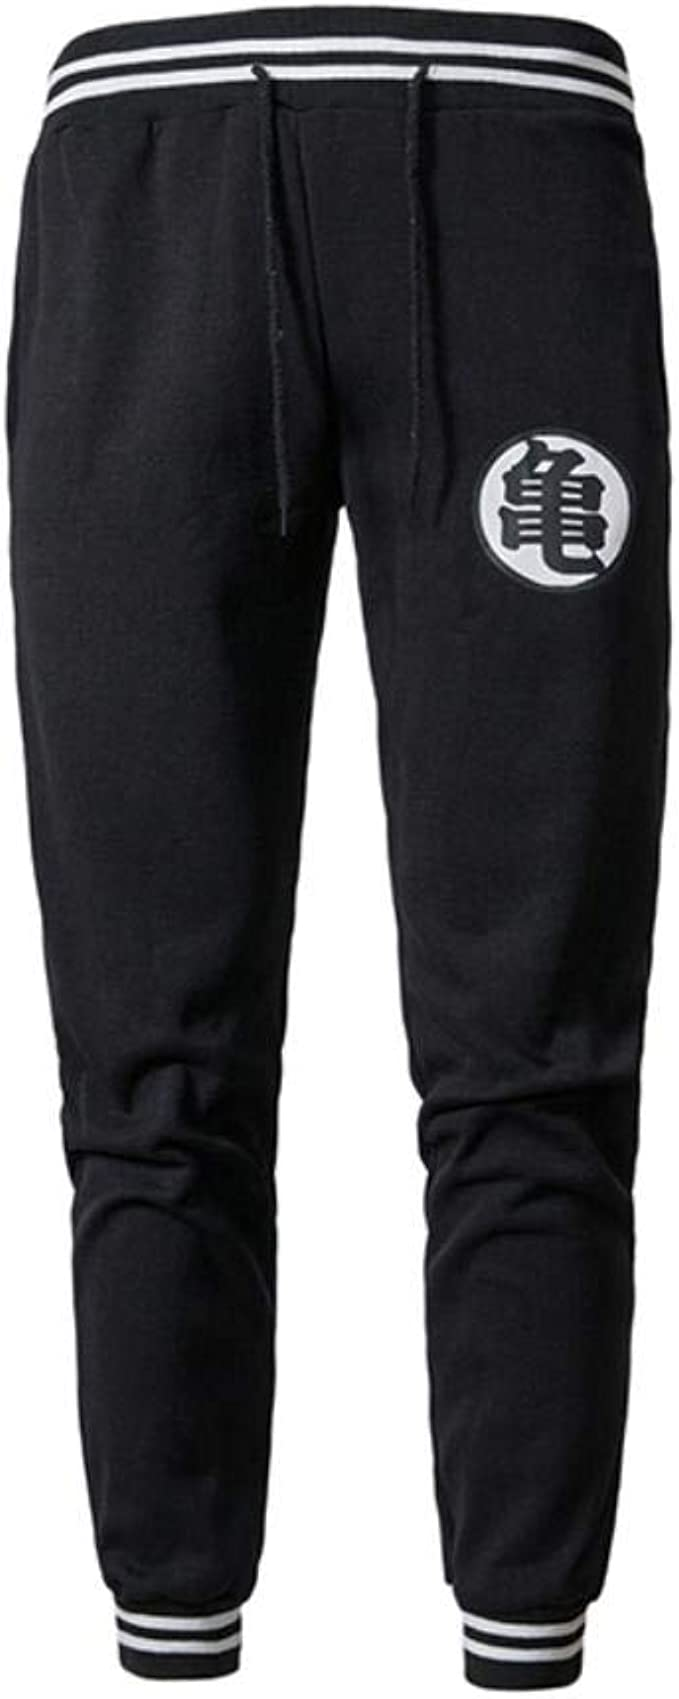 Dragon Ball Z Cotton Pants Mens Sweatpants Son Goku Black Gray Unisex Trousers